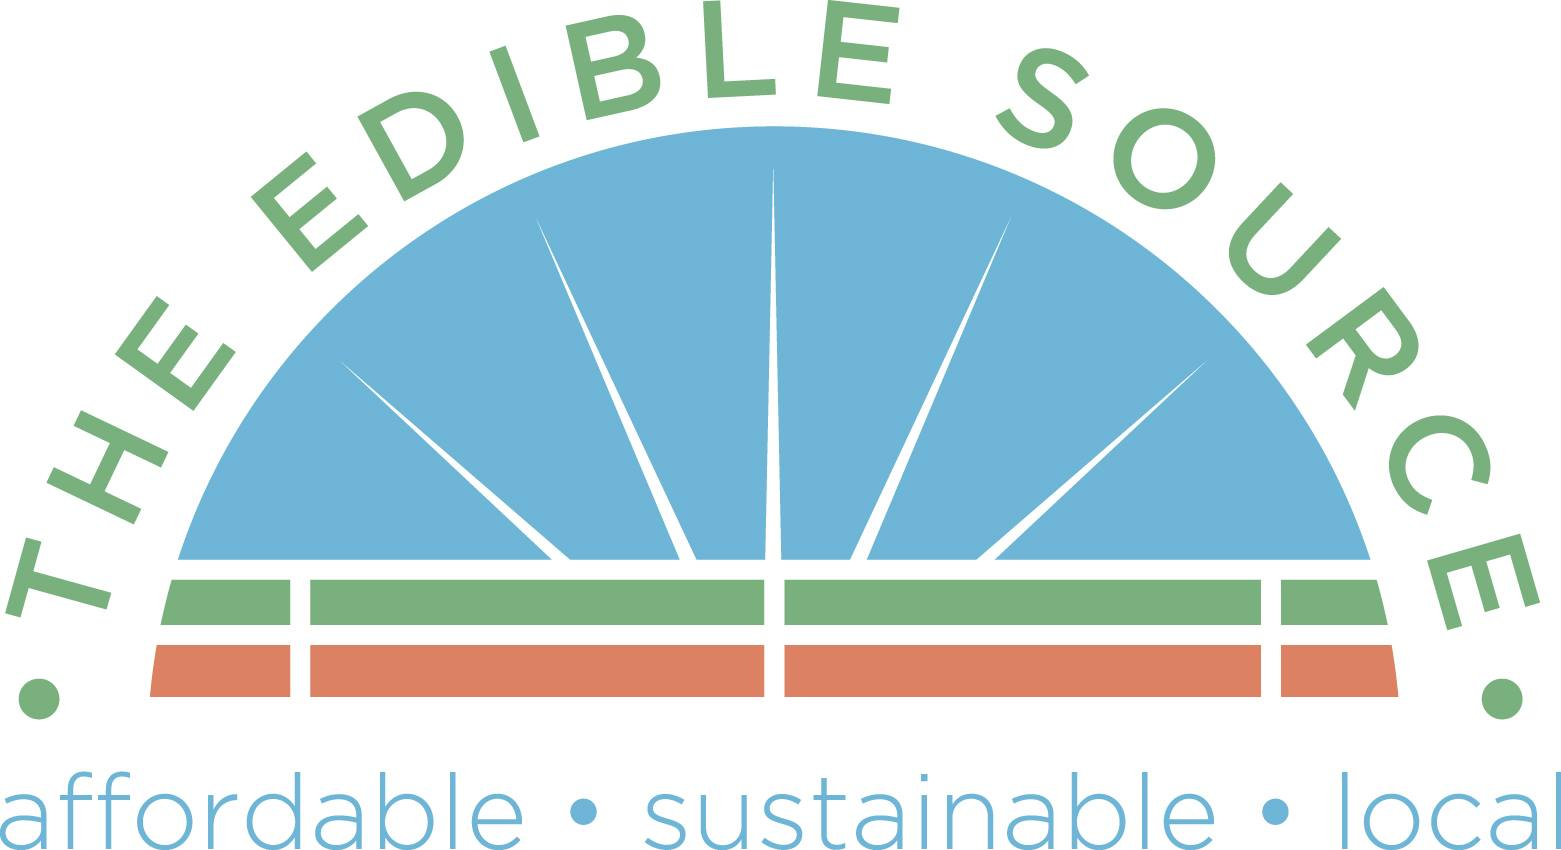 The Edible Source